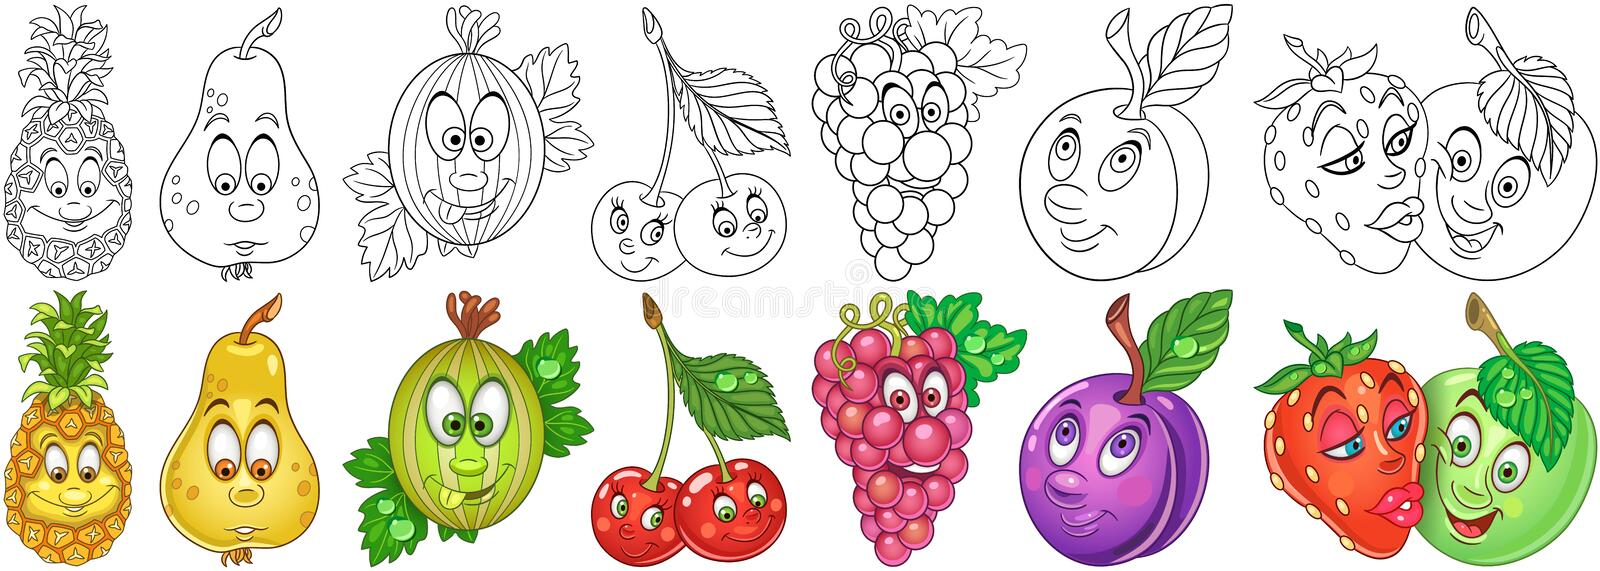 Cartoon Fruits set royalty free stock photos